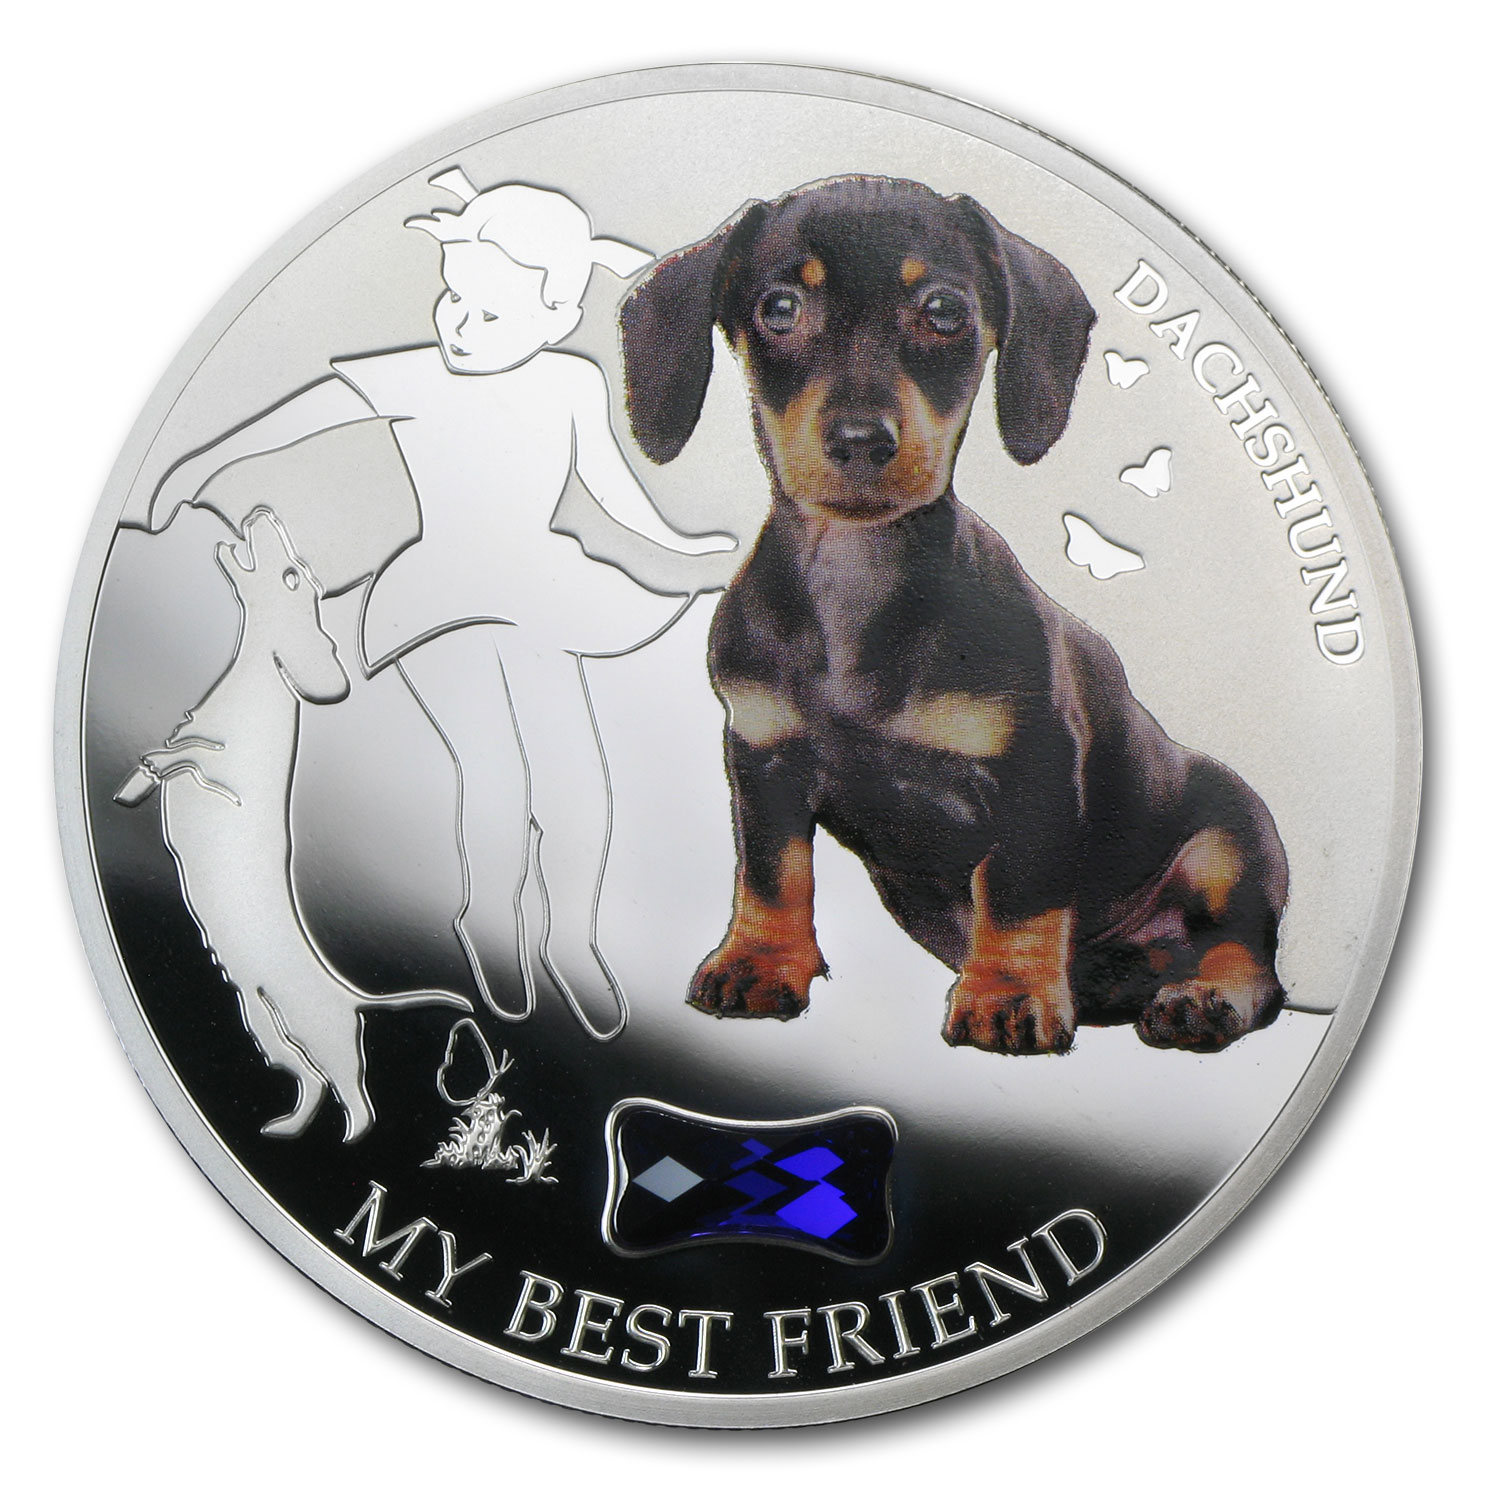 2013 Fiji Silver Dogs & Cats Series My Best Friend Dachshund